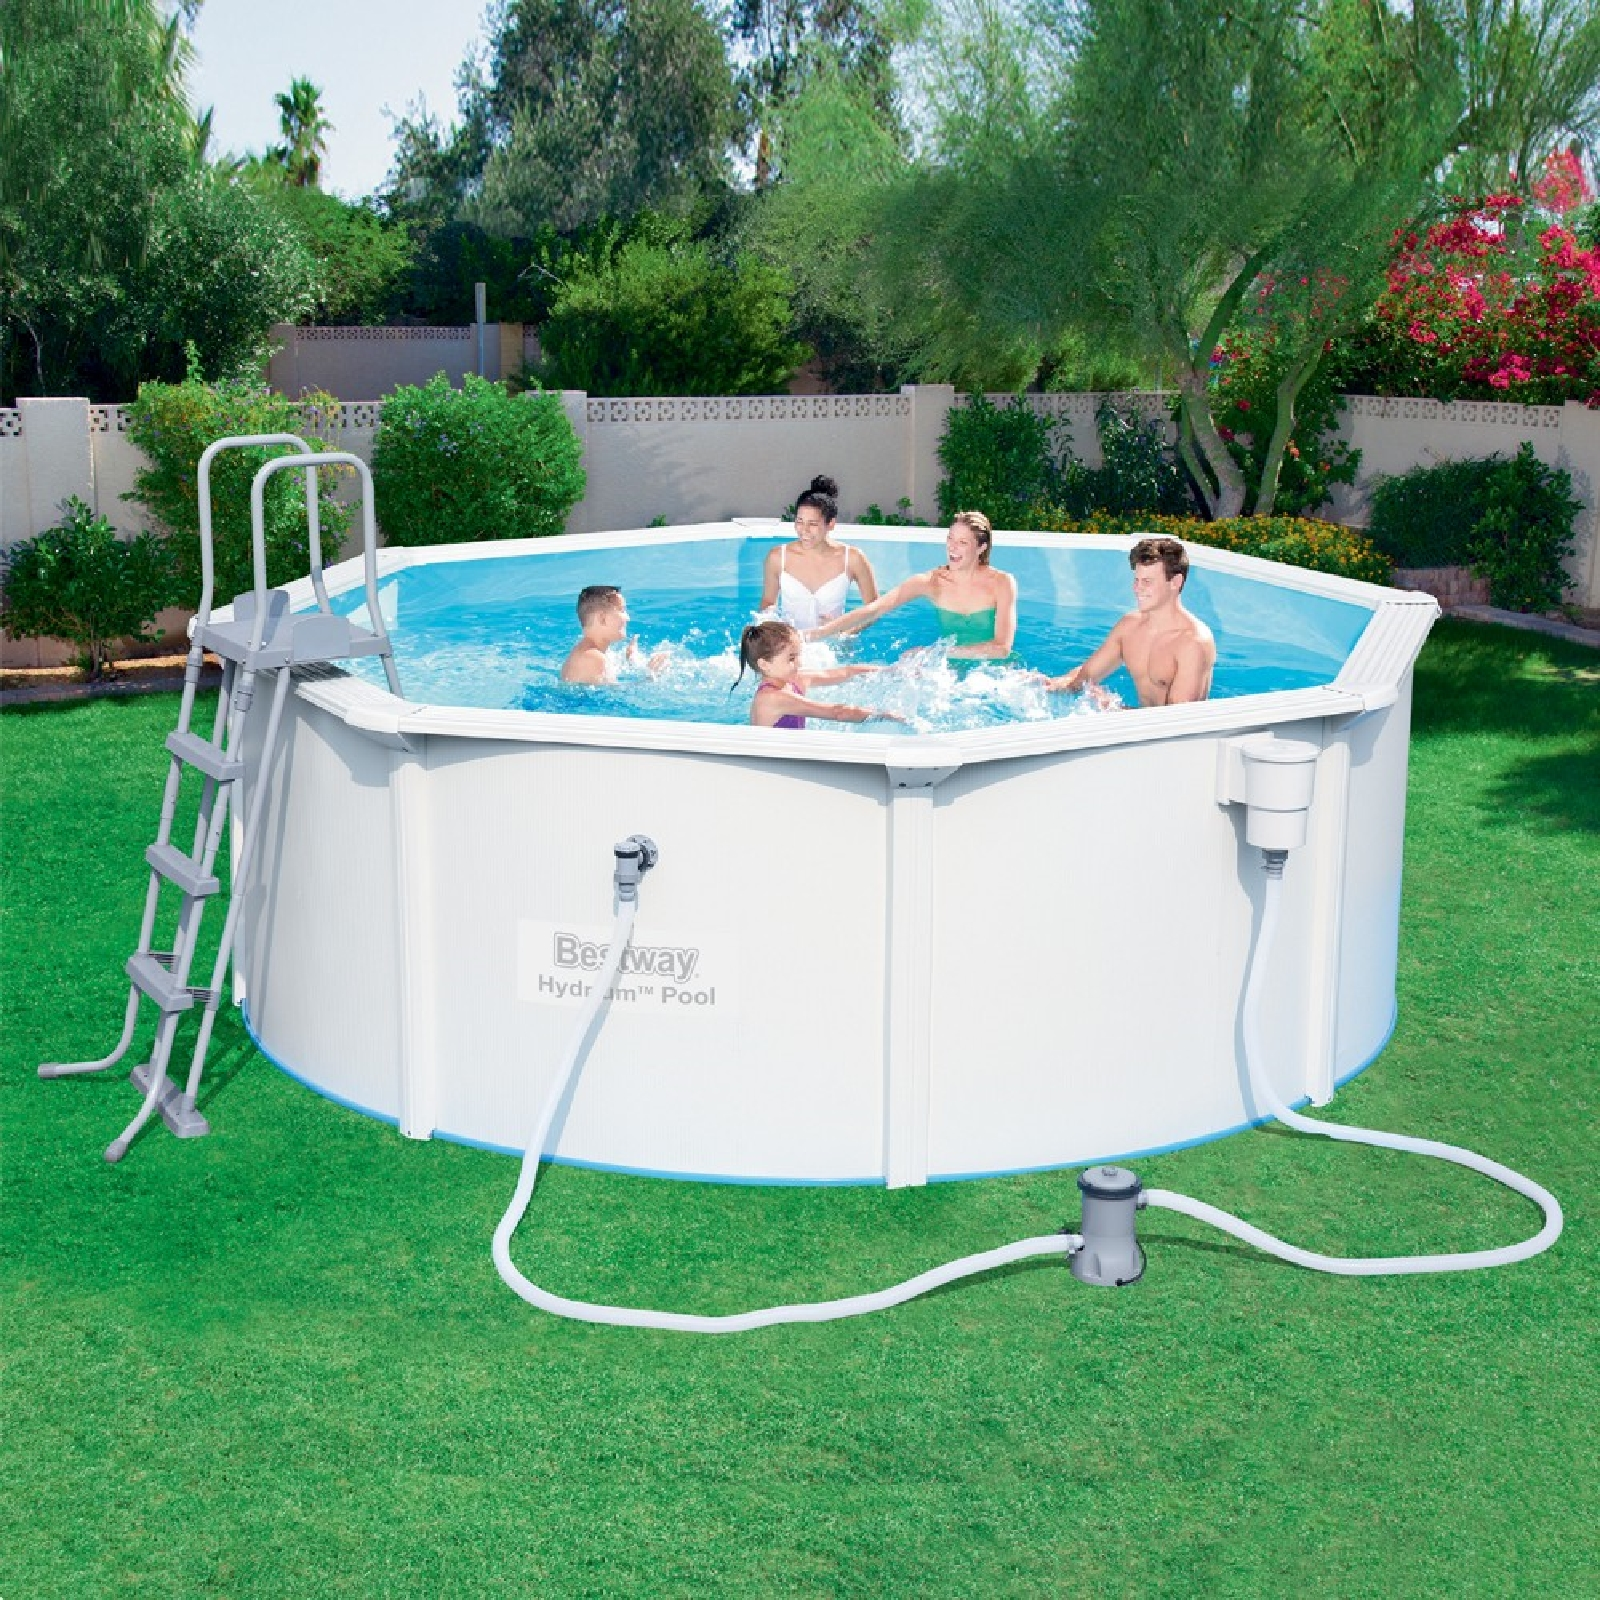 Multitabs Pool Hornbach Multitabs Pool Trendy Formulated To Prevent Chlorine Loss With